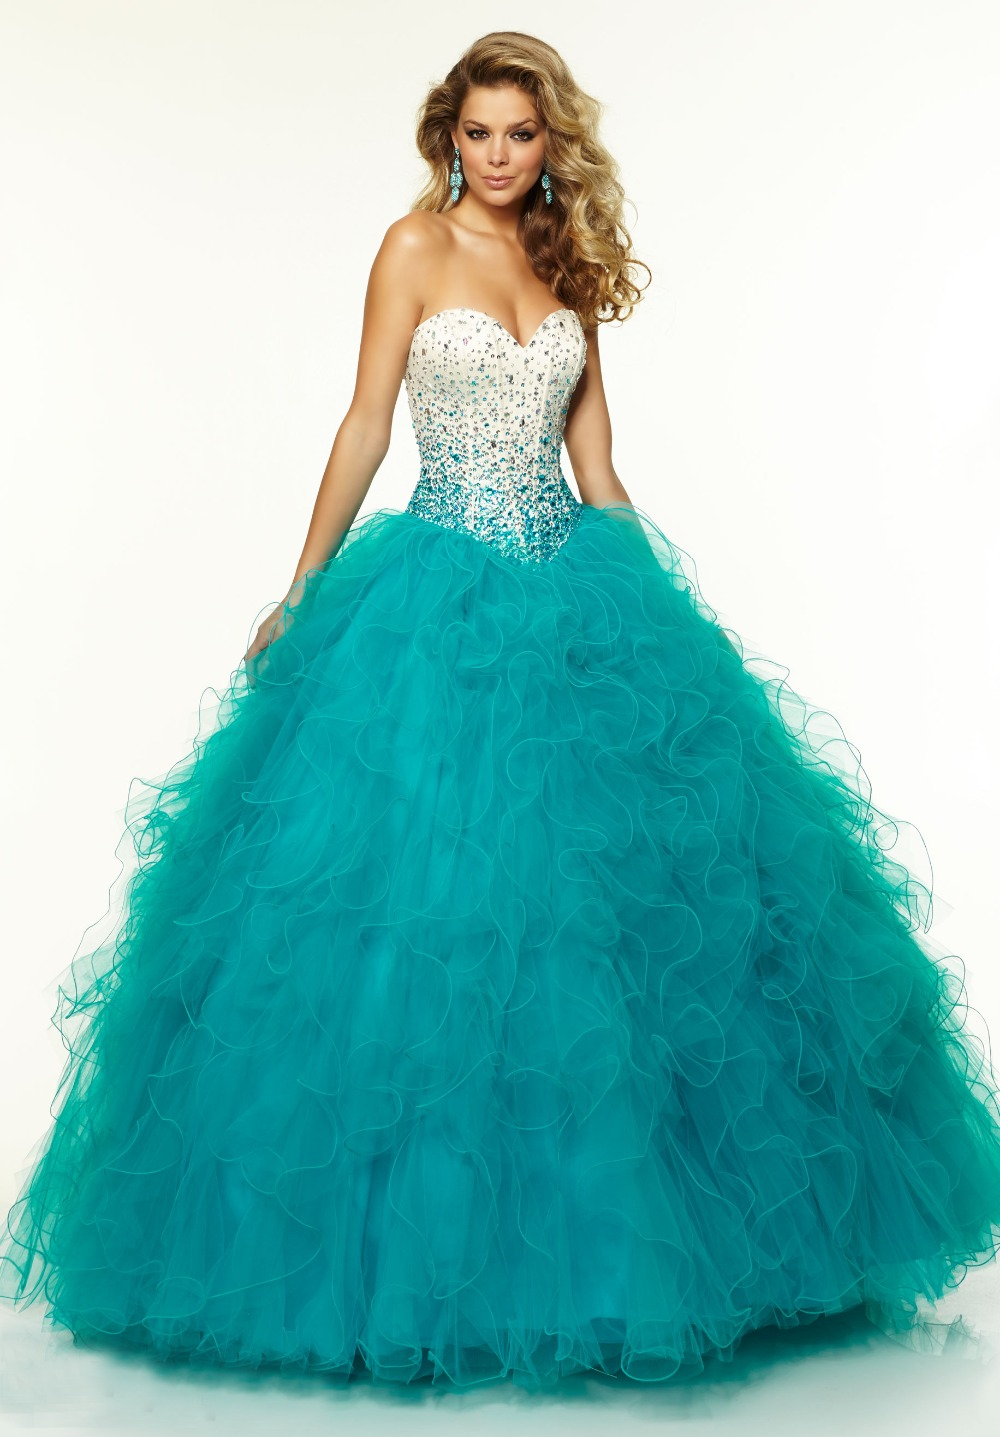 5fa98e08a40 strapless beaded top ruffles skirt puffy turquoise wedding dresseschina  mainland